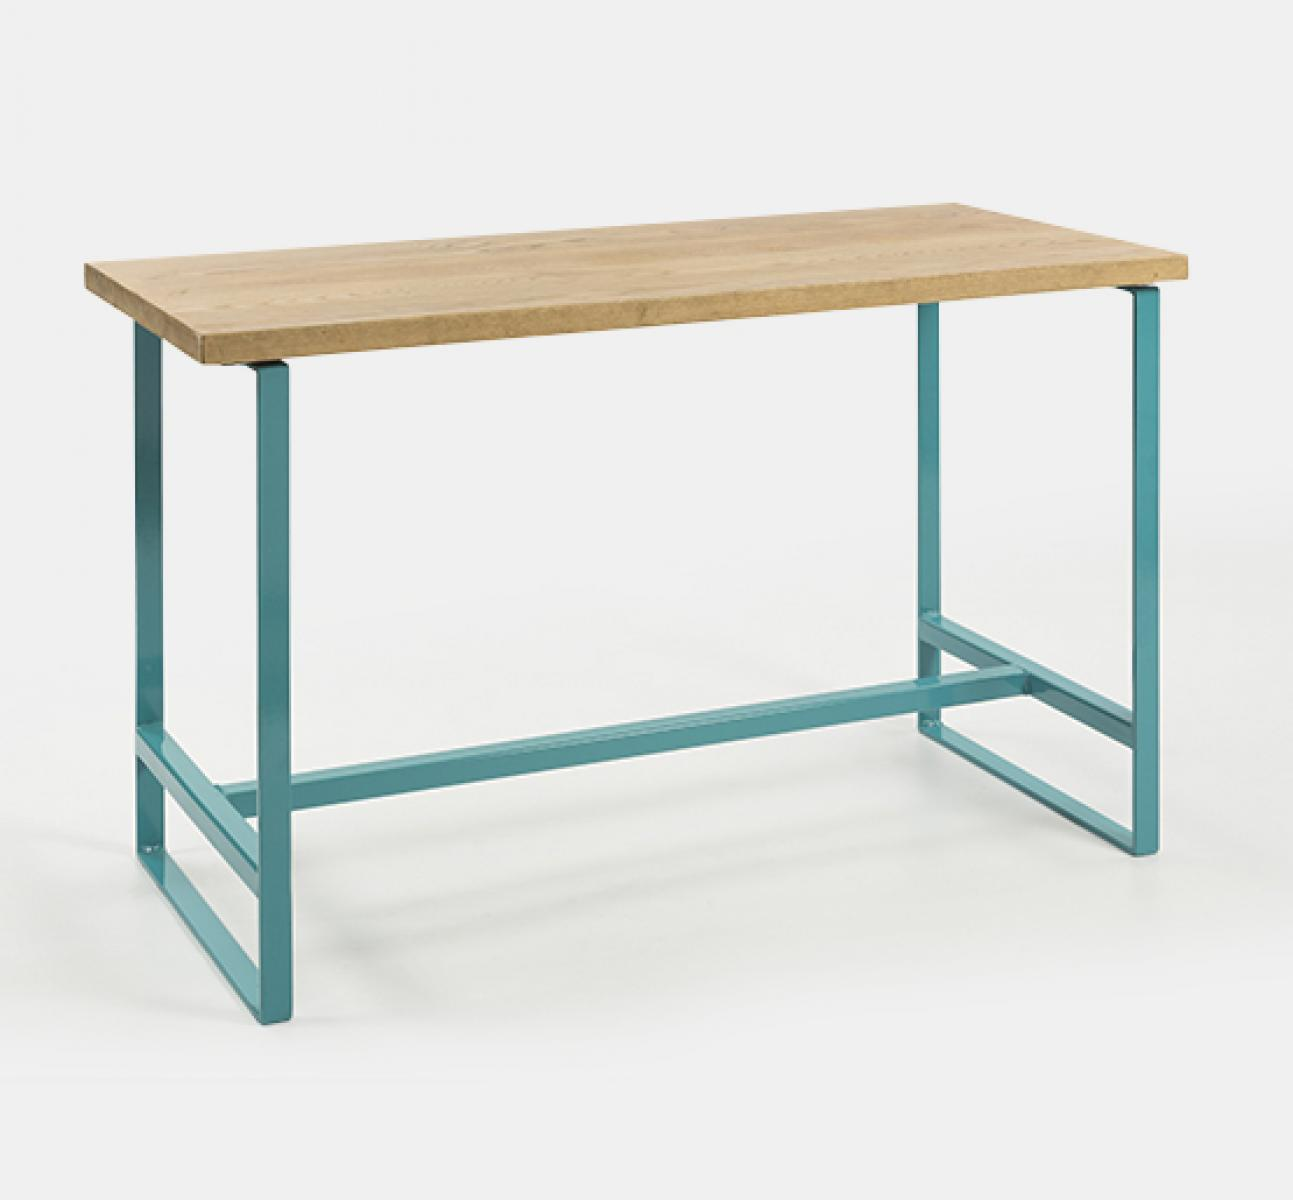 Montague Bar Table (1200x700mm)